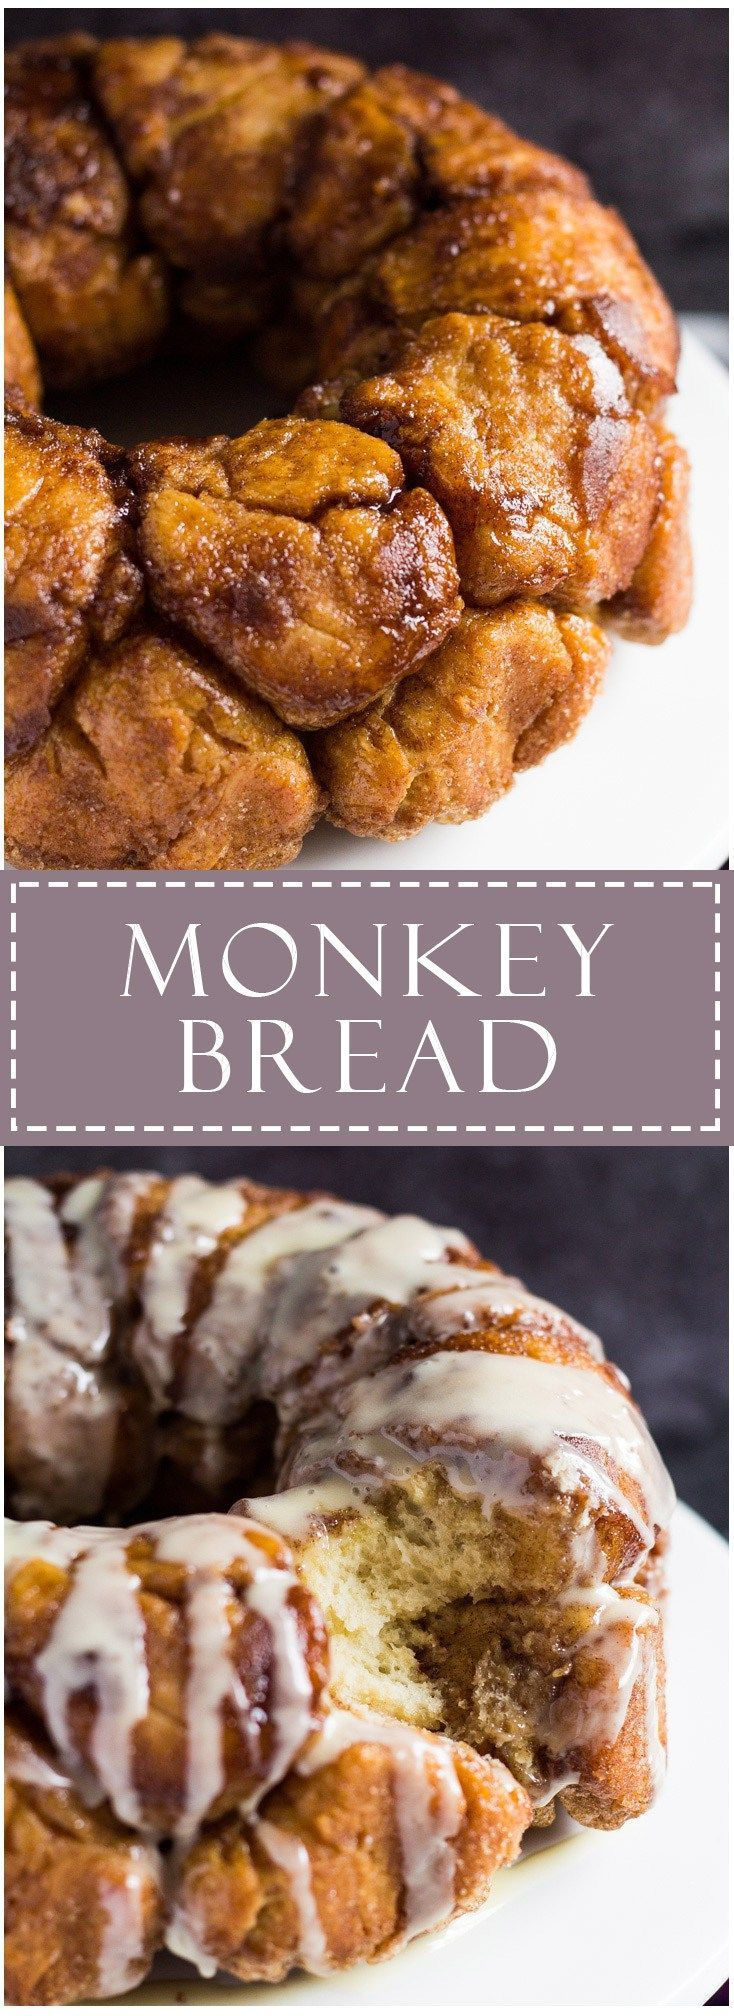 Monkey Bread | http://marshasbakingaddiction.com /marshasbakeblog/